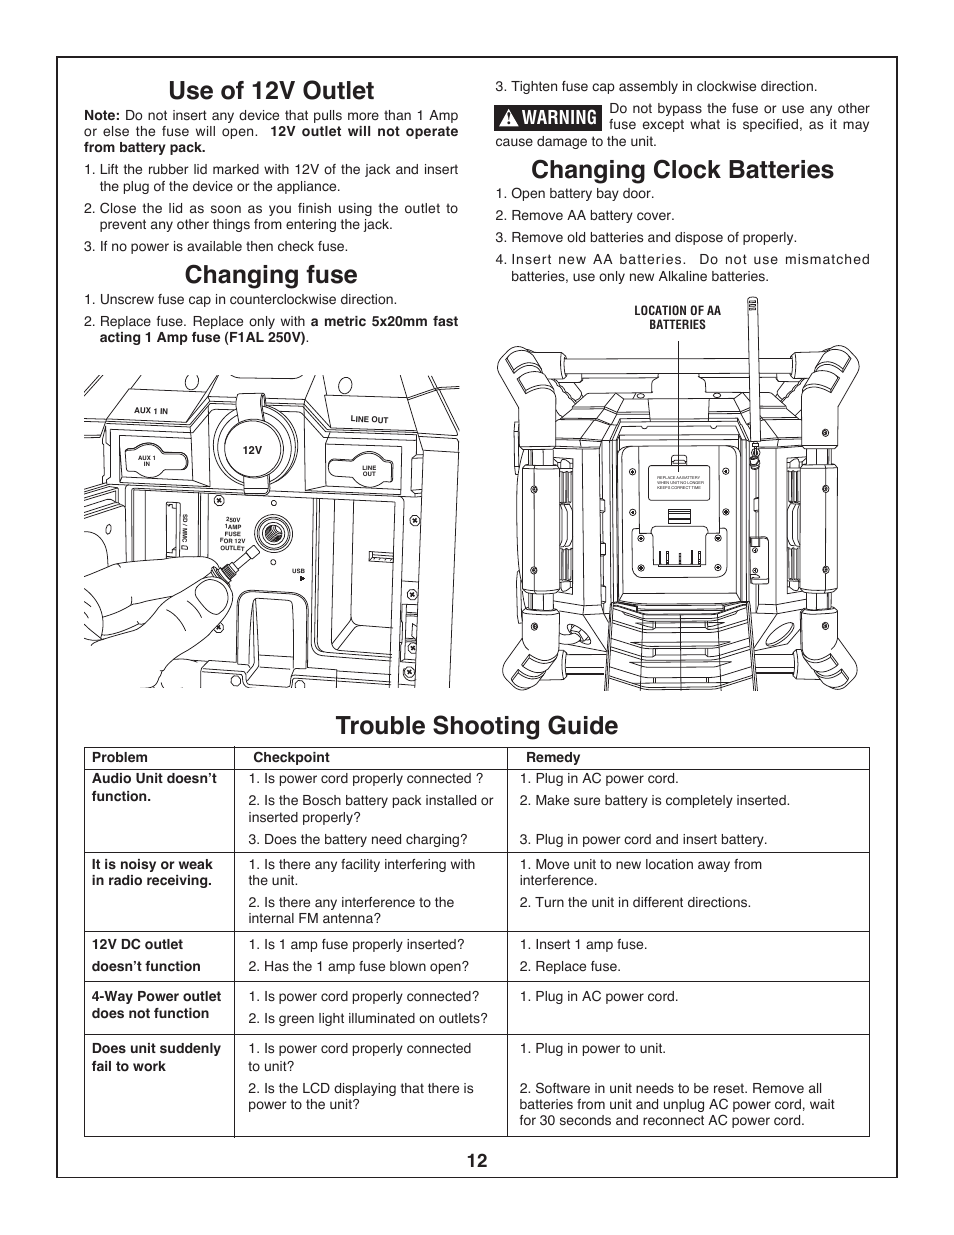 Use Of 12v Outlet Changing Fuse Clock Batteries Bosch Diagram Pb360s User Manual Page 12 40